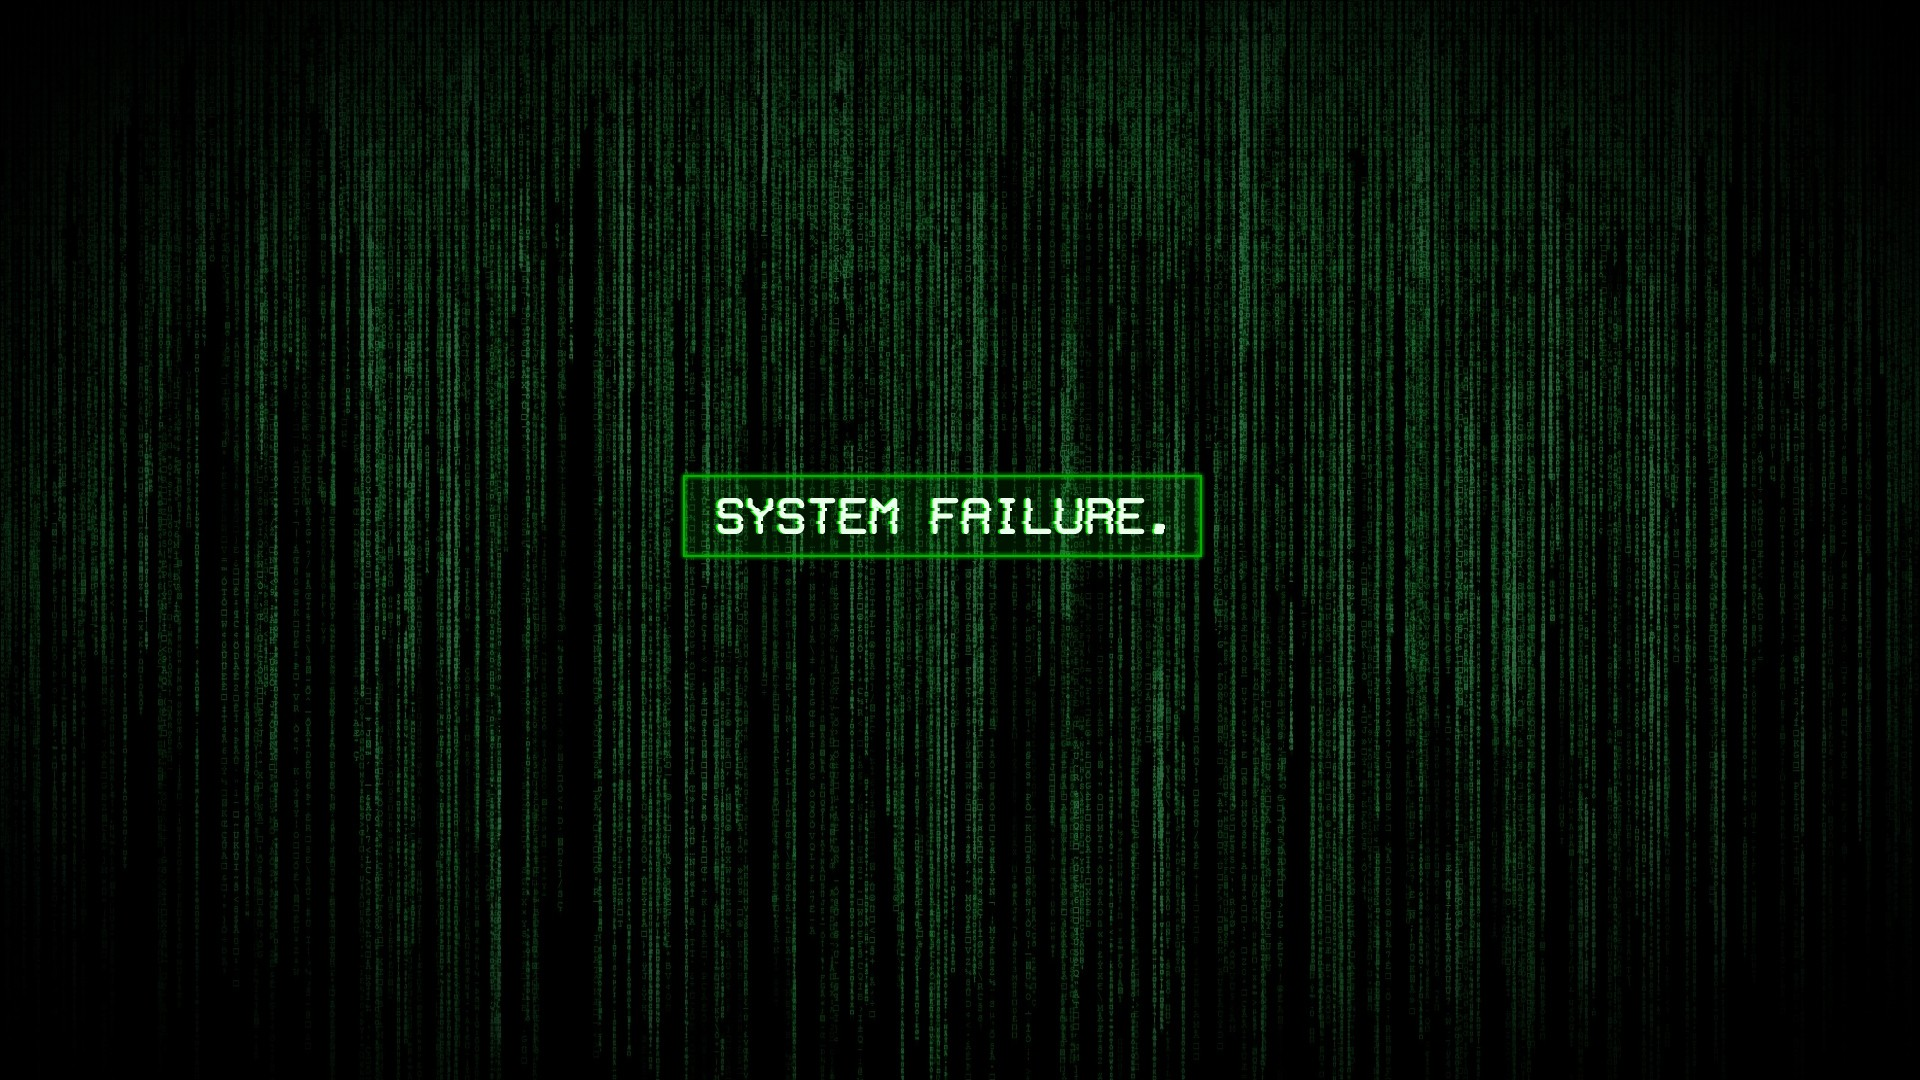 System Failure, HD computer, 4k Wallpapers, Images, Backgrounds, Photos and Pictures